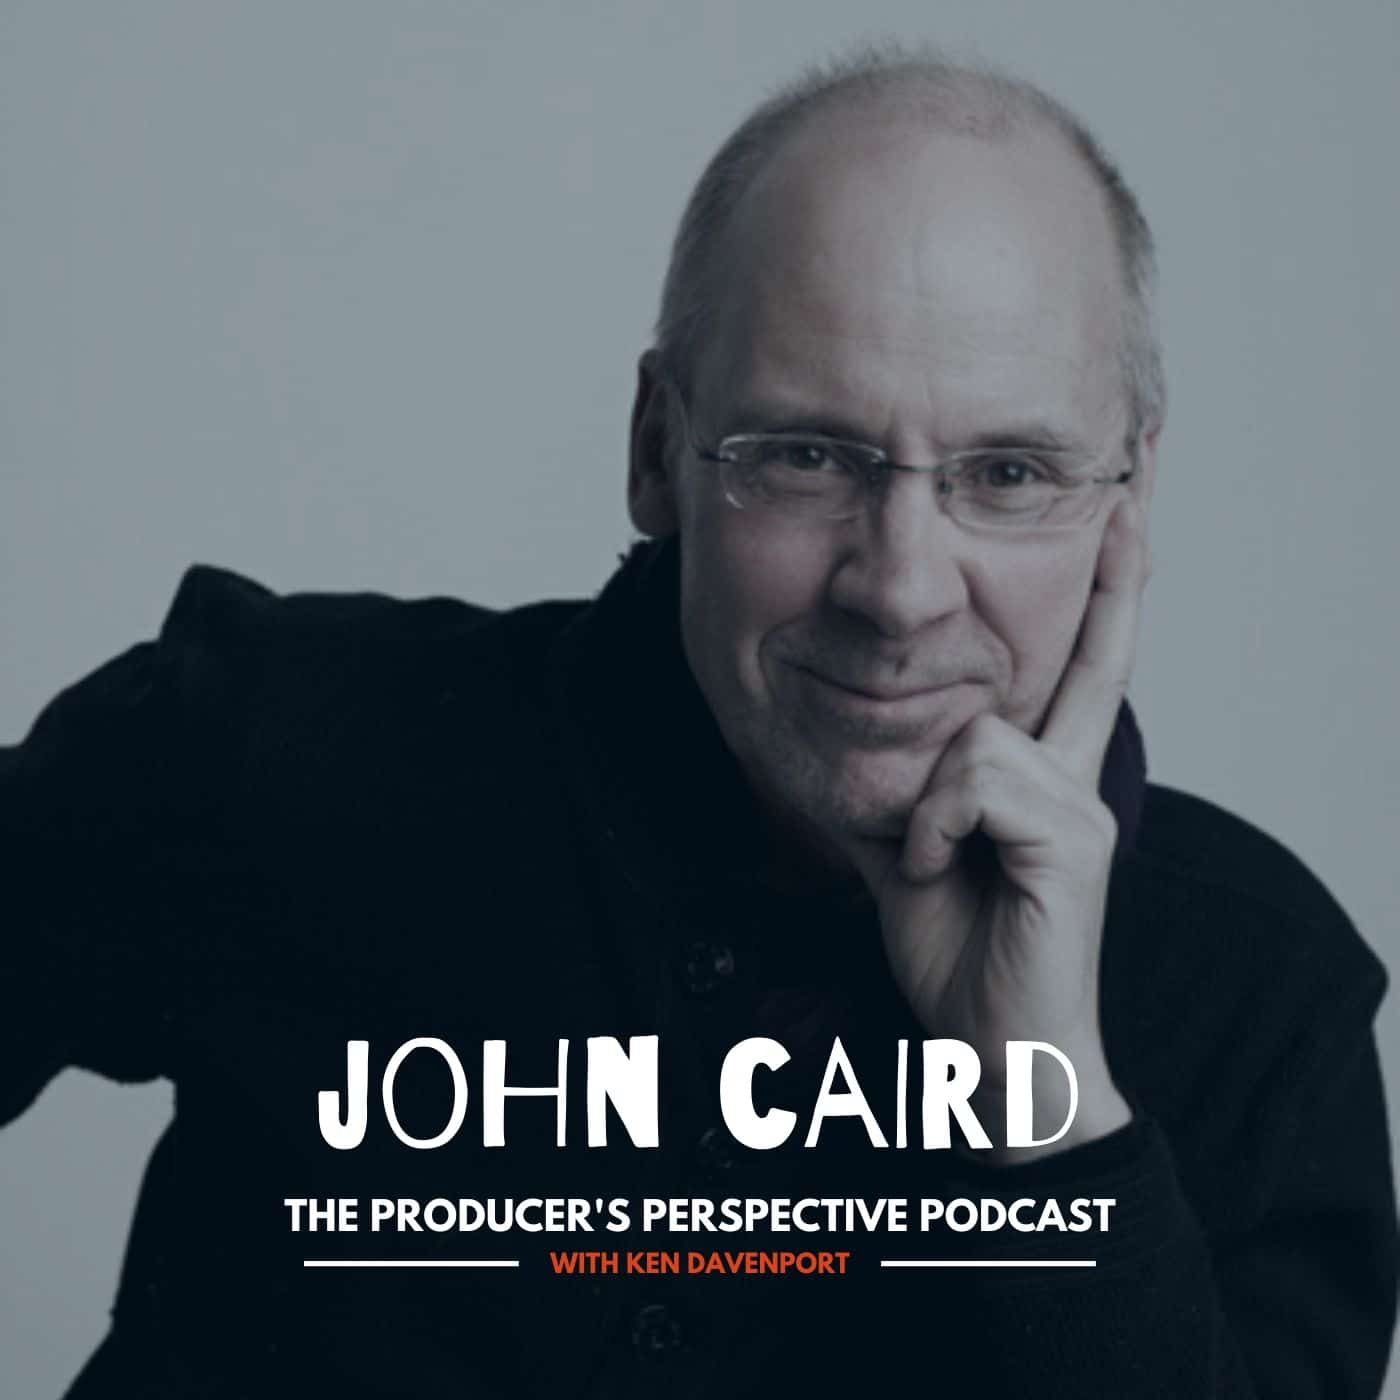 Ken Davenport's The Producer's Perspective Podcast Episode 43 - John Caird